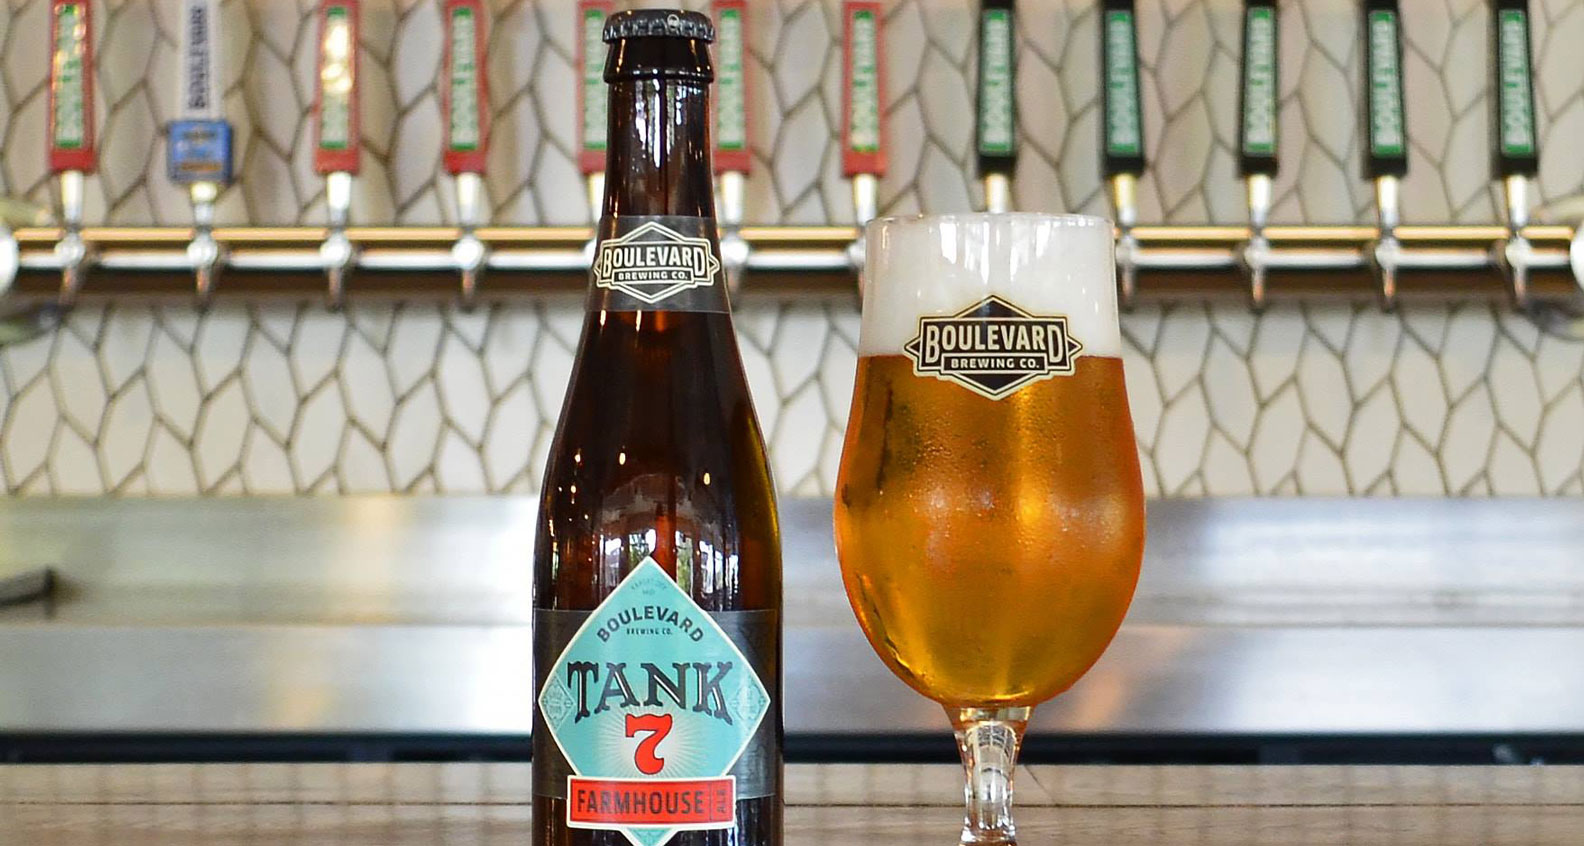 Boulevard Brewing Tank 7 beer